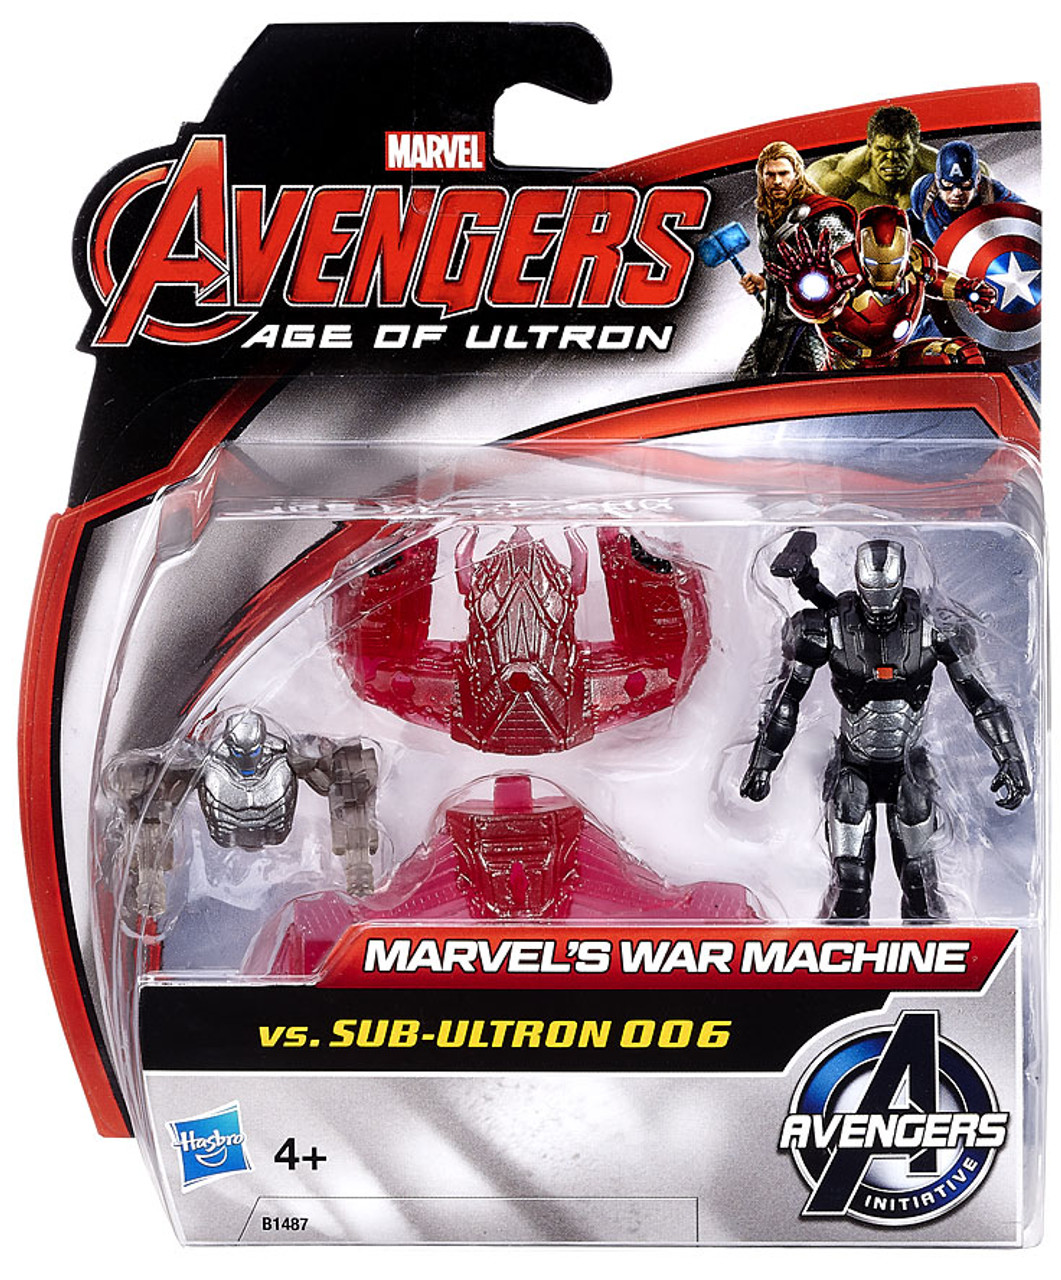 Sub-Ultron 006 2.5-inch Figure ... Marvel Avengers Age of Ultron War Machine Vs